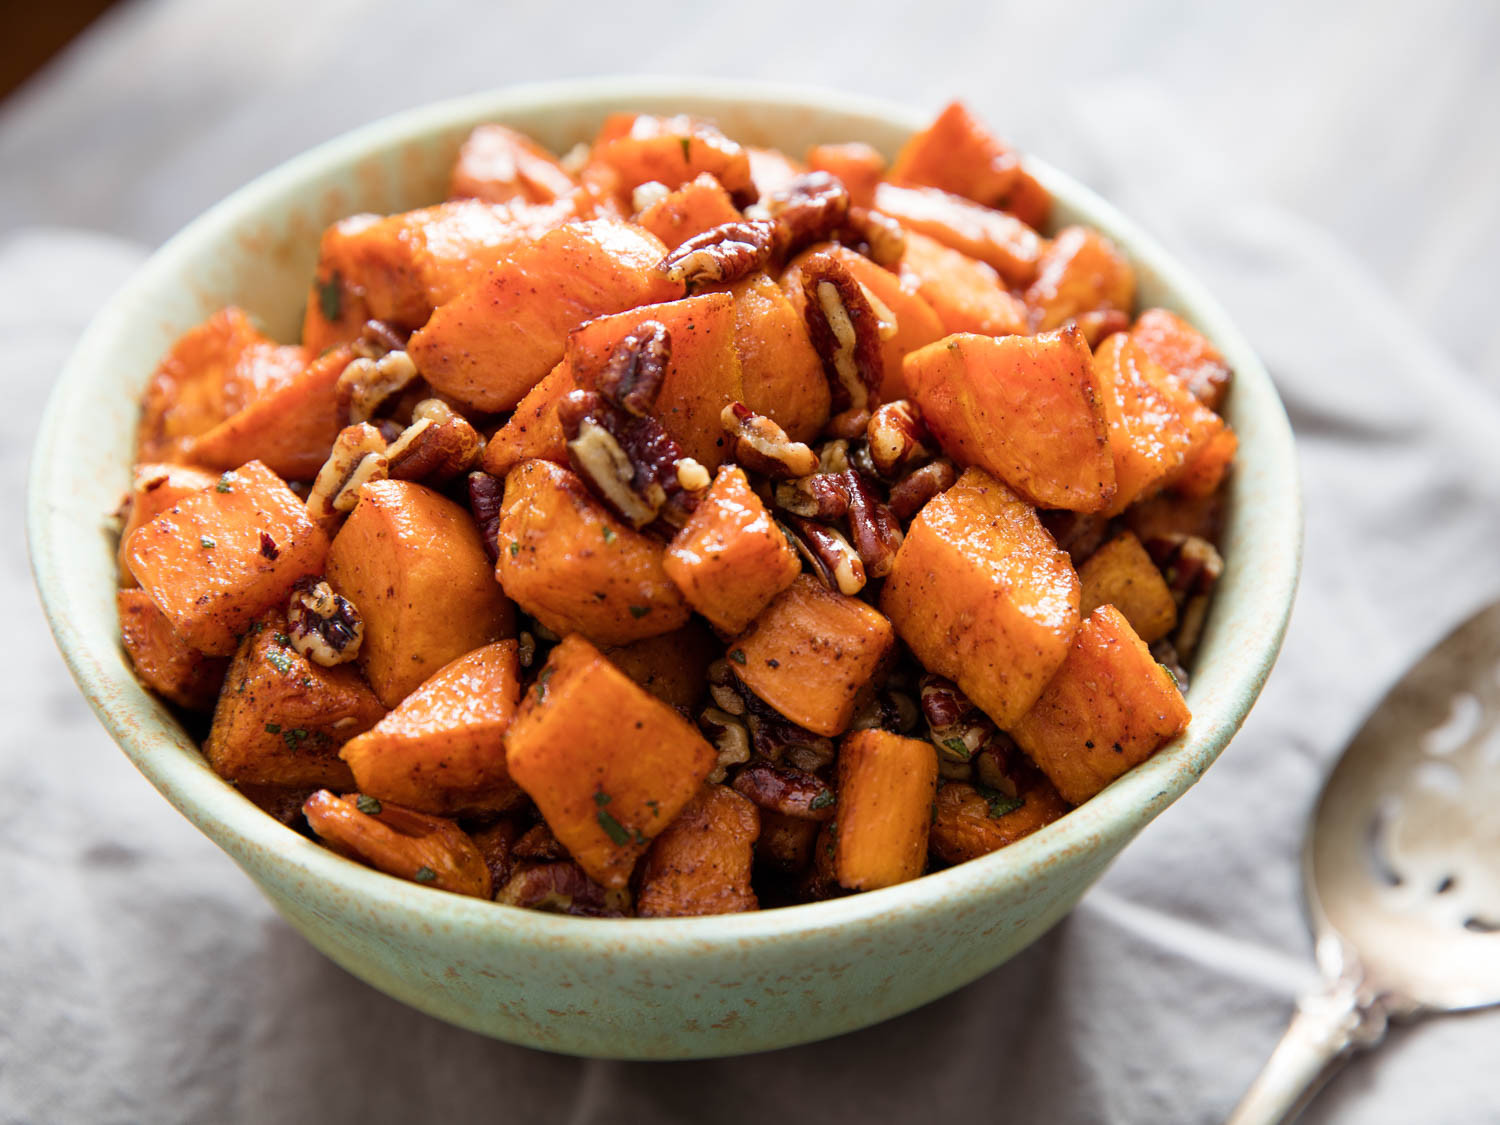 Sweet Potato Recipes For Thanksgiving  14 Sweet Potato Recipes for Thanksgiving That Are Just